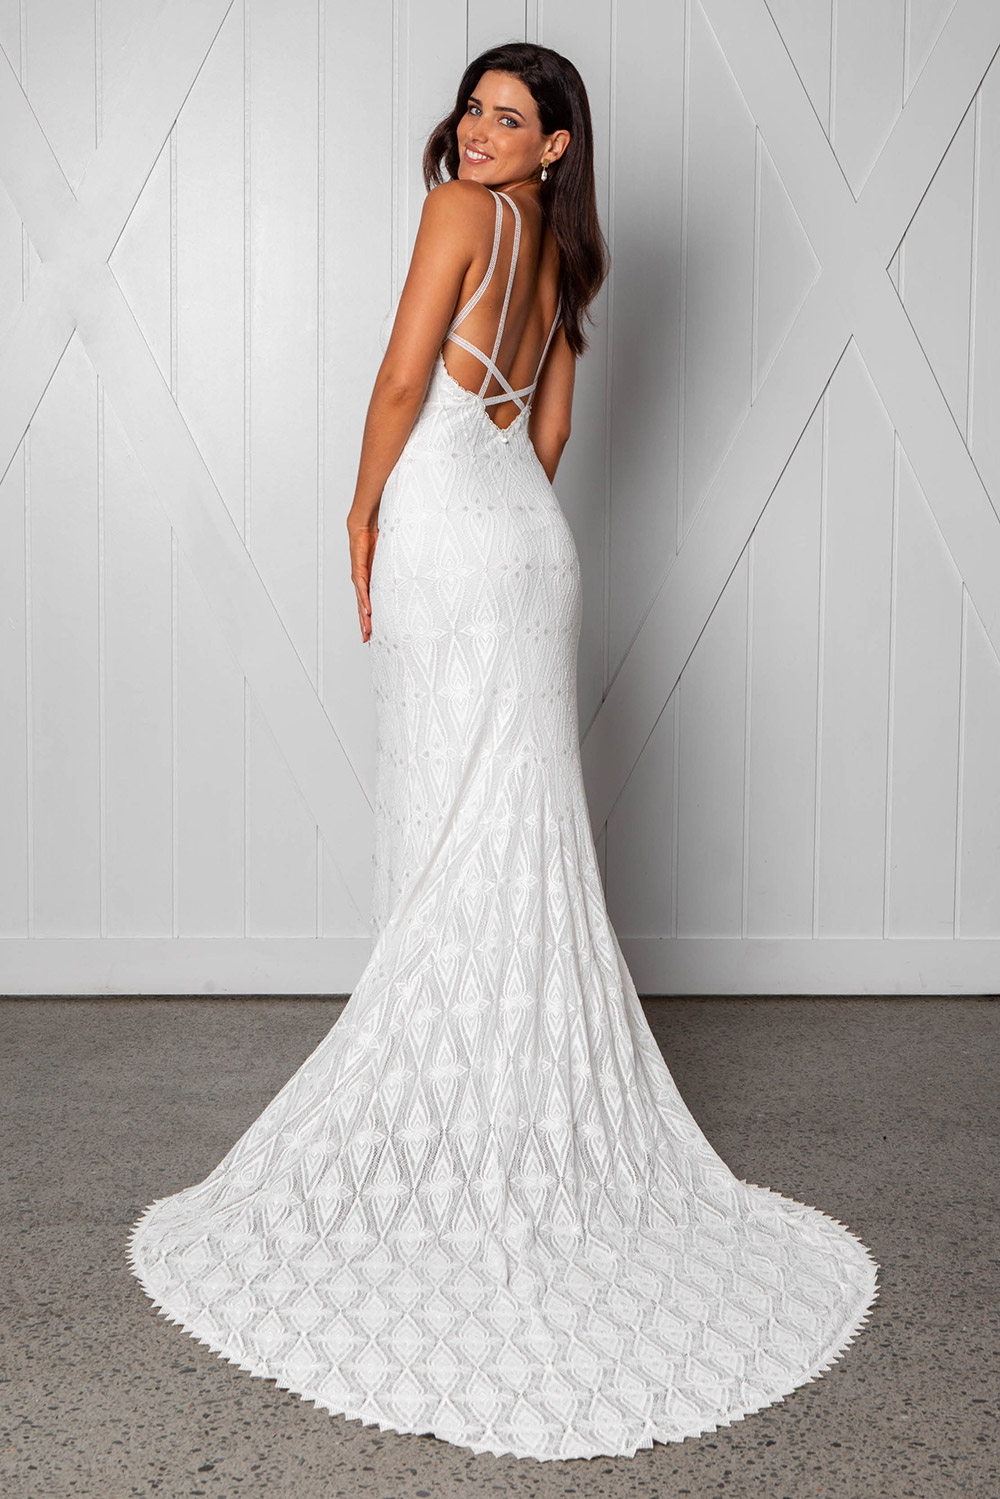 Leon - Grace Loves Lace 2018 Bridal Collection. www.theweddingnotebook.com